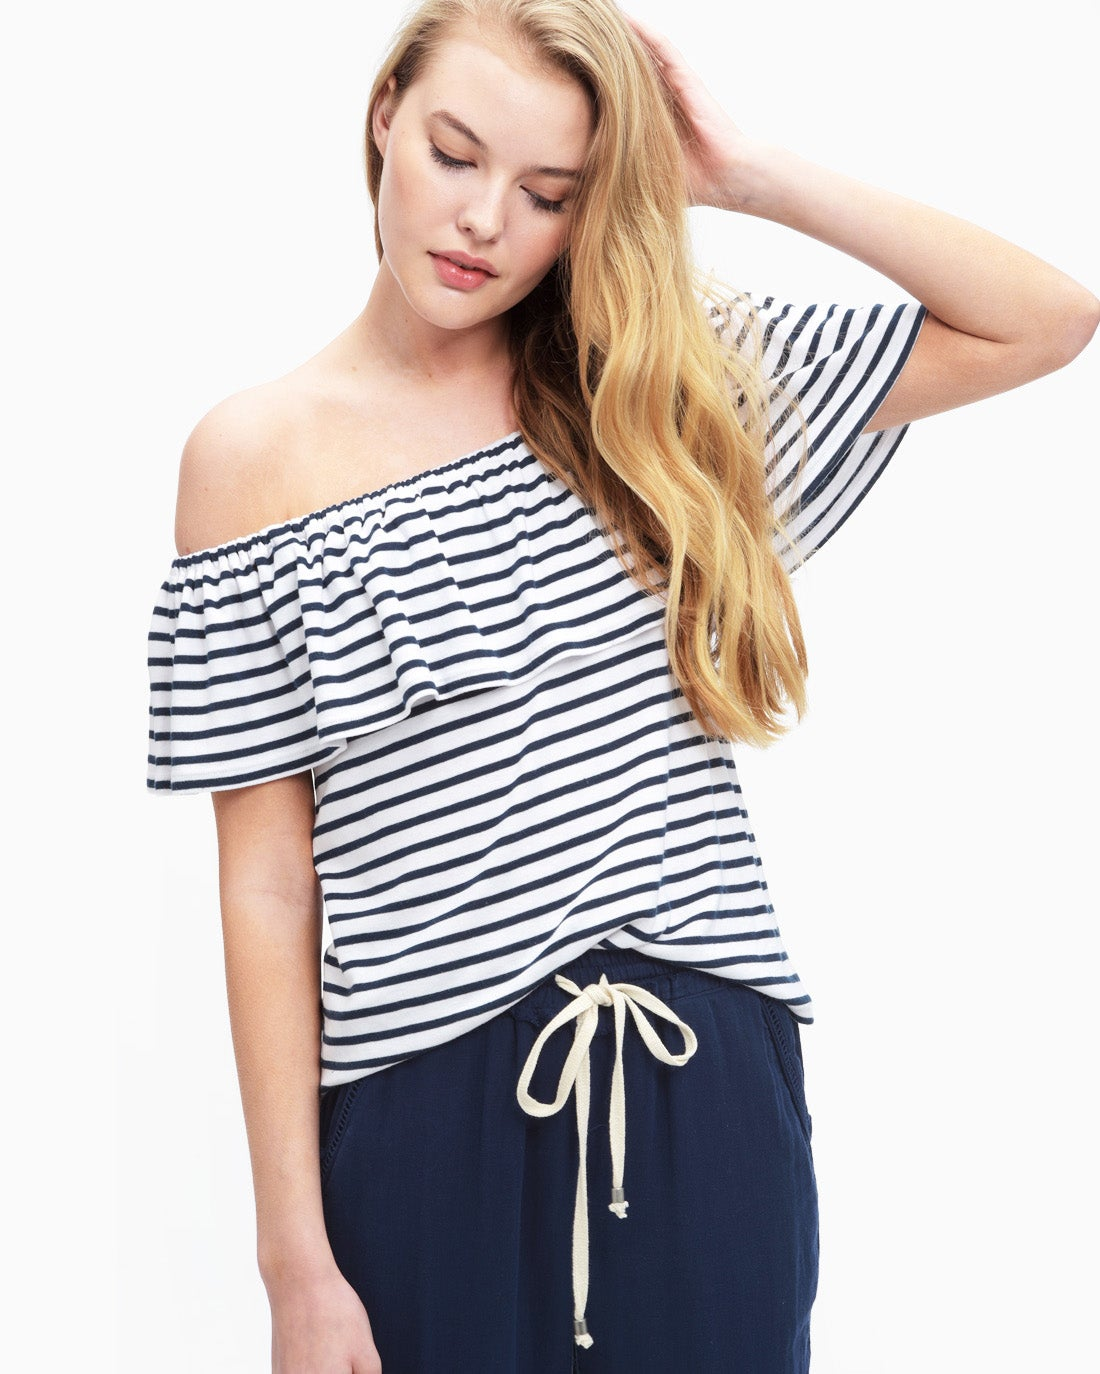 Splendid Women's 1X1 Venice Stripe Off Shoulder Top